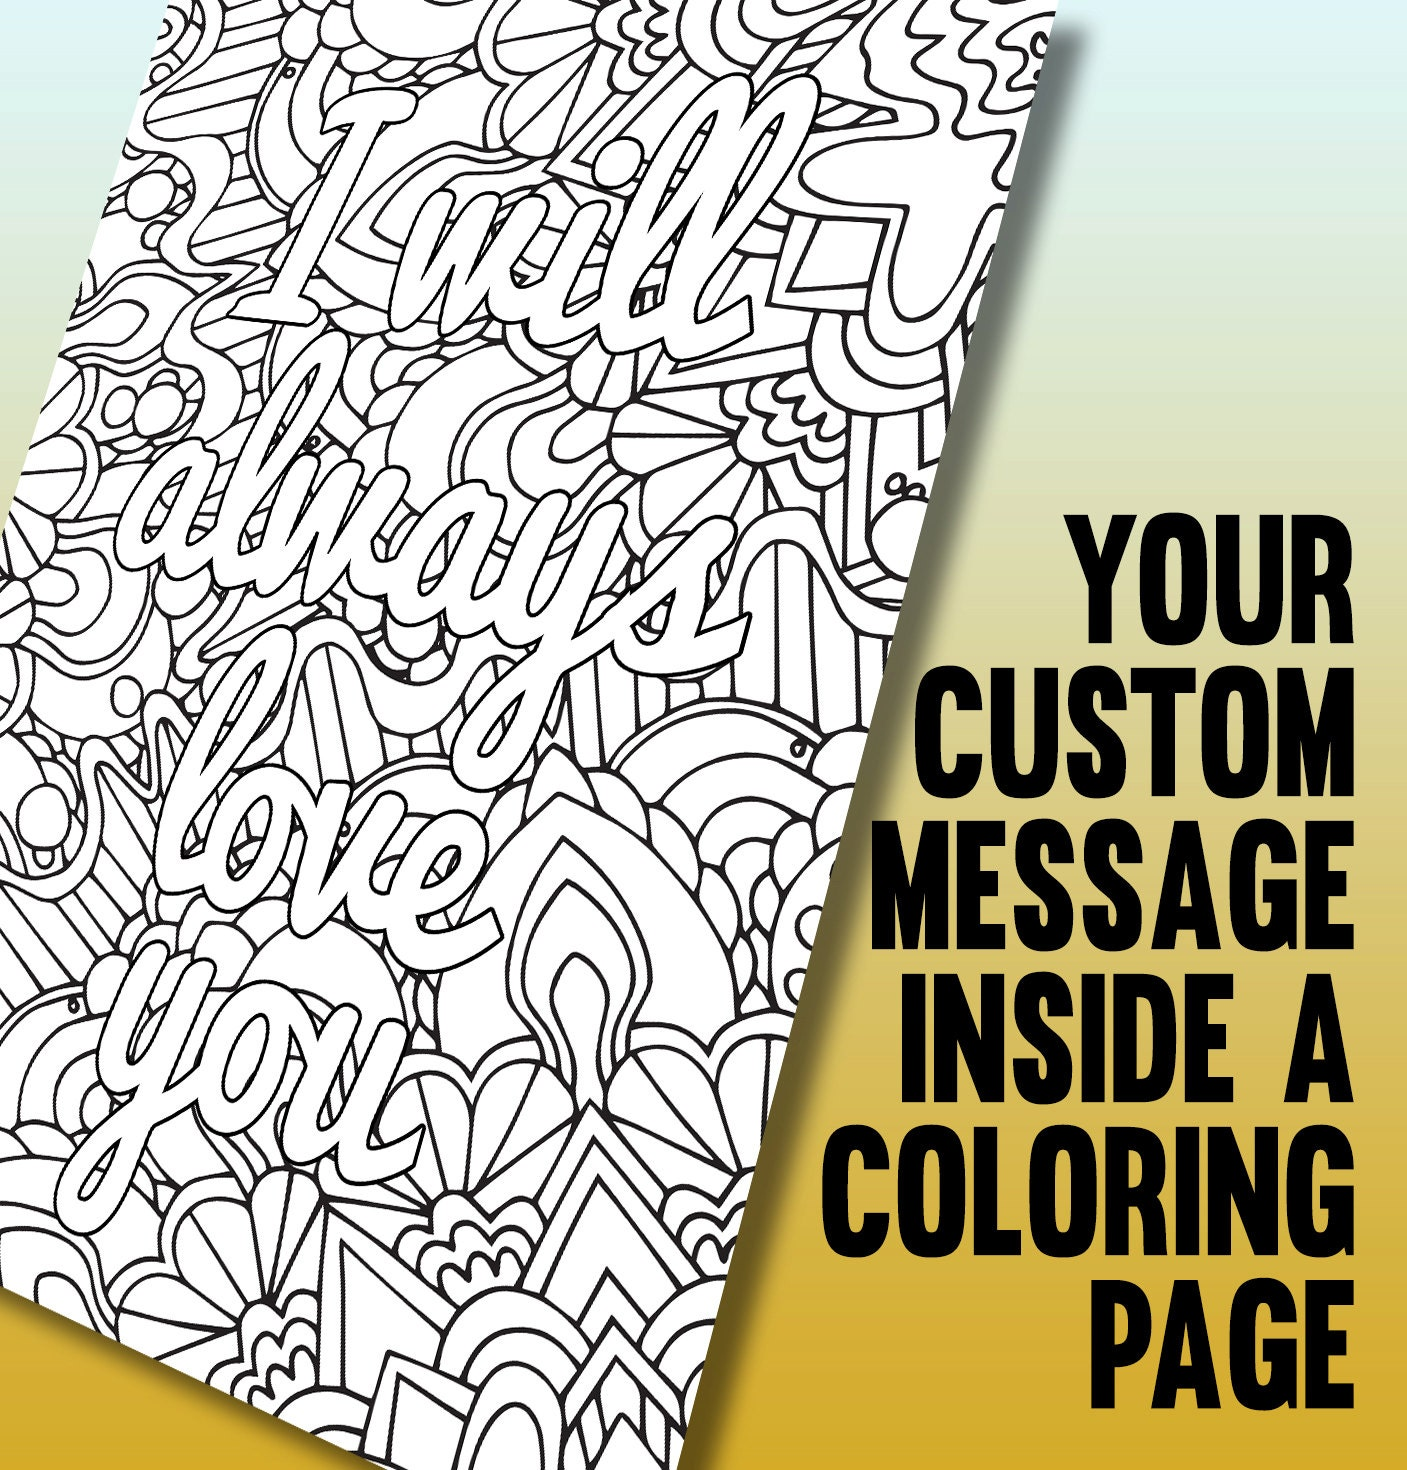 Customized coloring page Printable A4 coloring page made